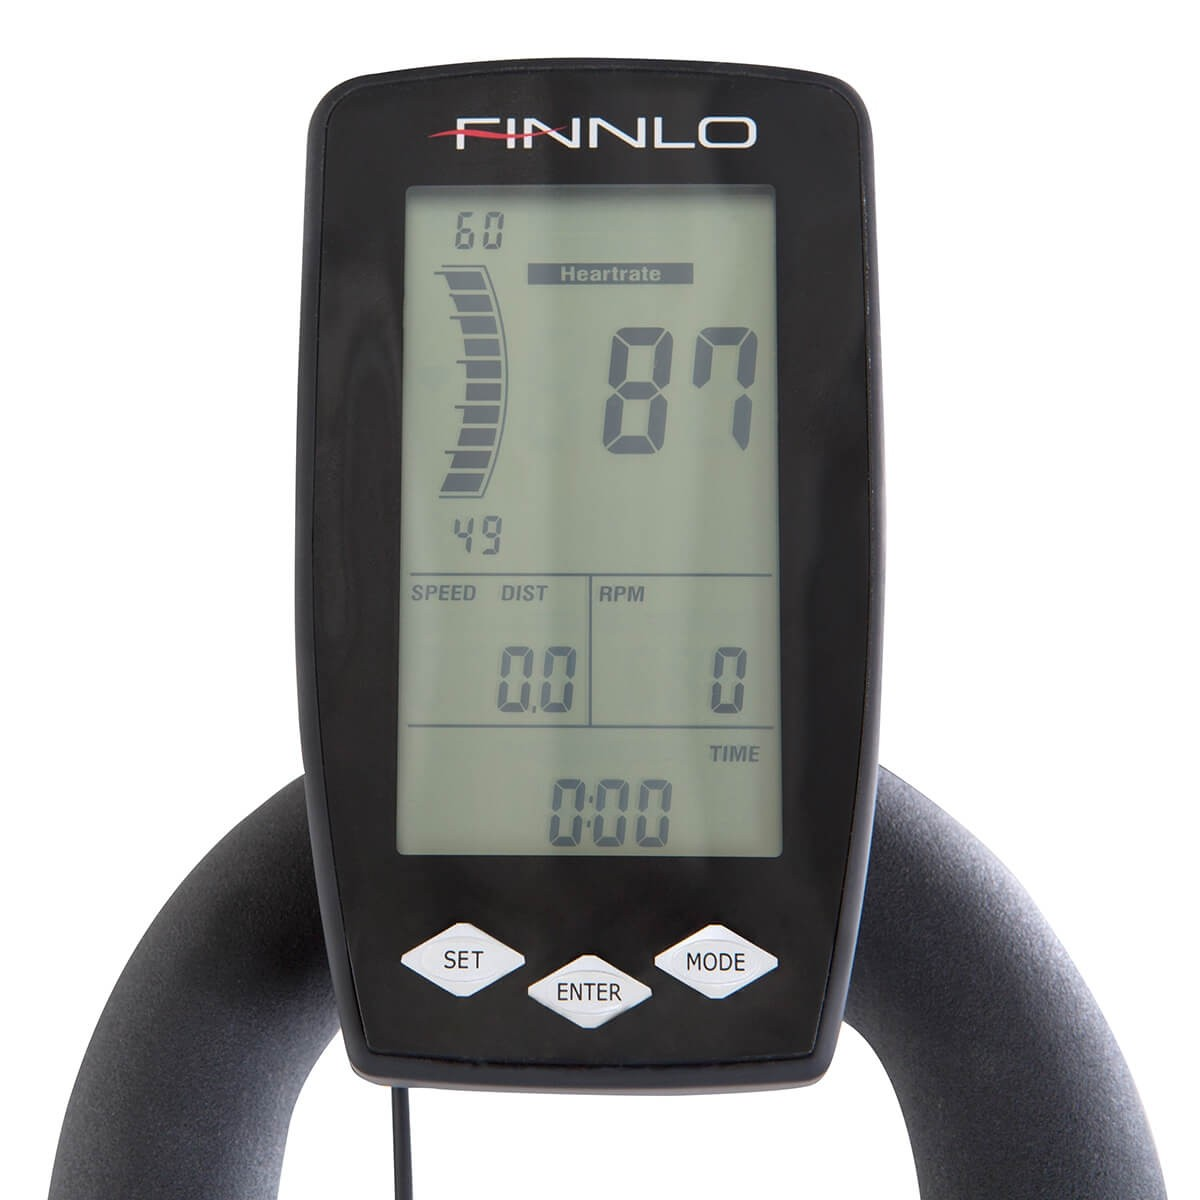 Cyklotrena hammer finnlo maximum speedbike pro lcd displej